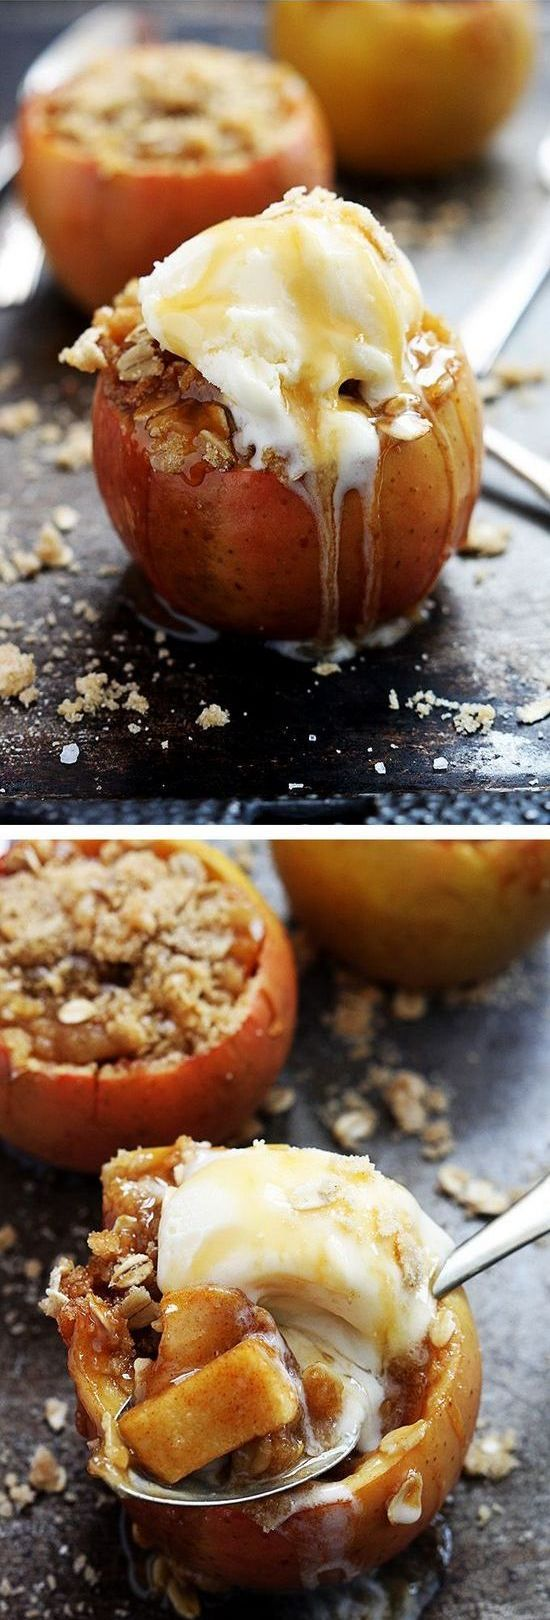 Apple Crisp Stuffed Apples, this could be a good way to avoid an entire pie. I would cut the amount of sugar way back and change to almond flour.